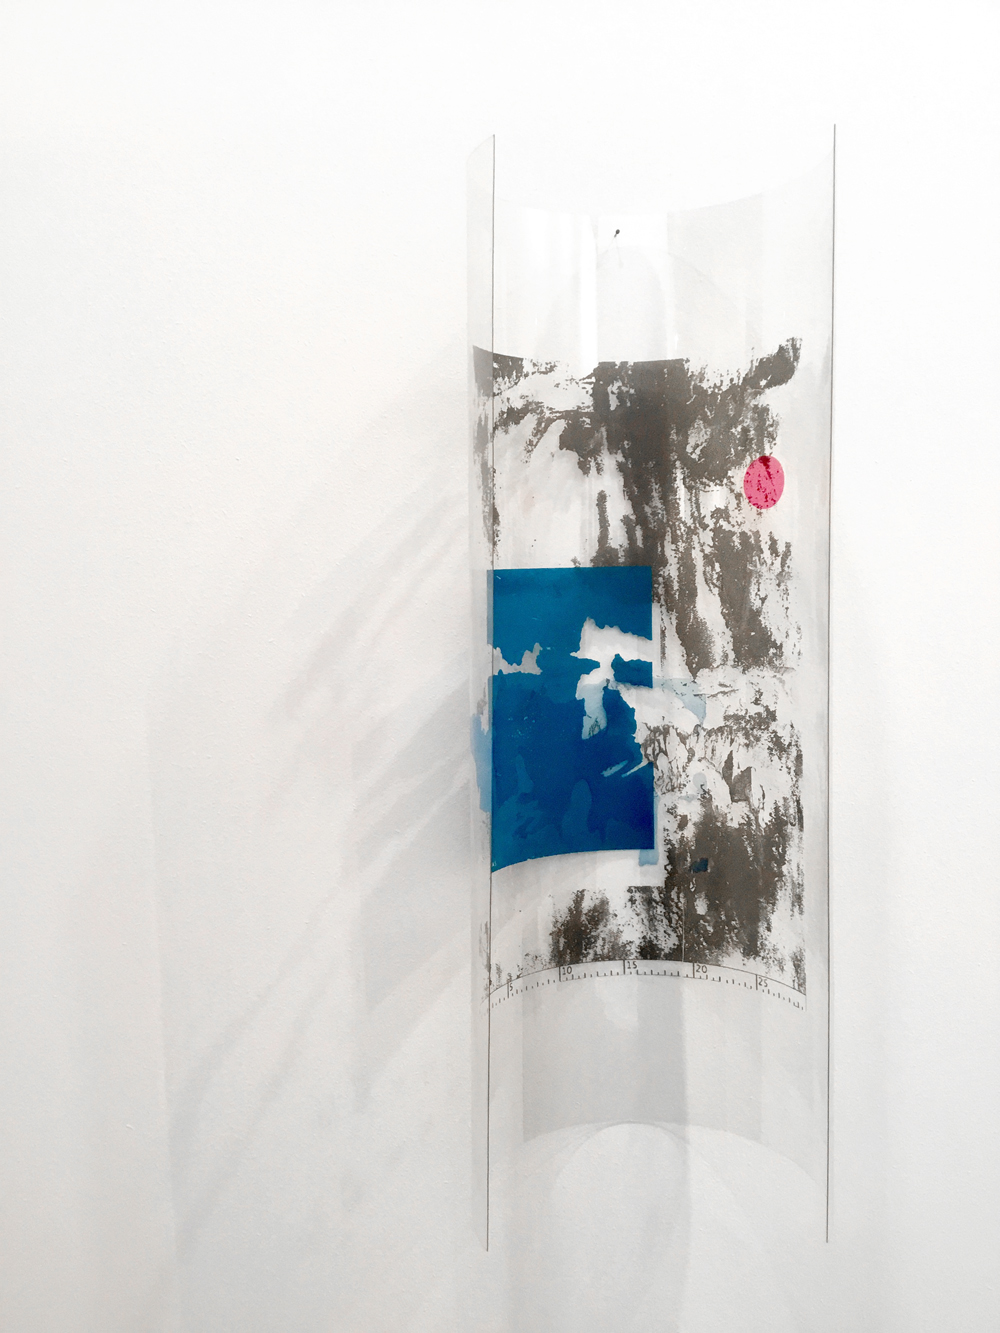 'A5 + - P.B. + 30 cm + X', 66 x 23 x 17 cm, screen printing on plexiglas, 2016